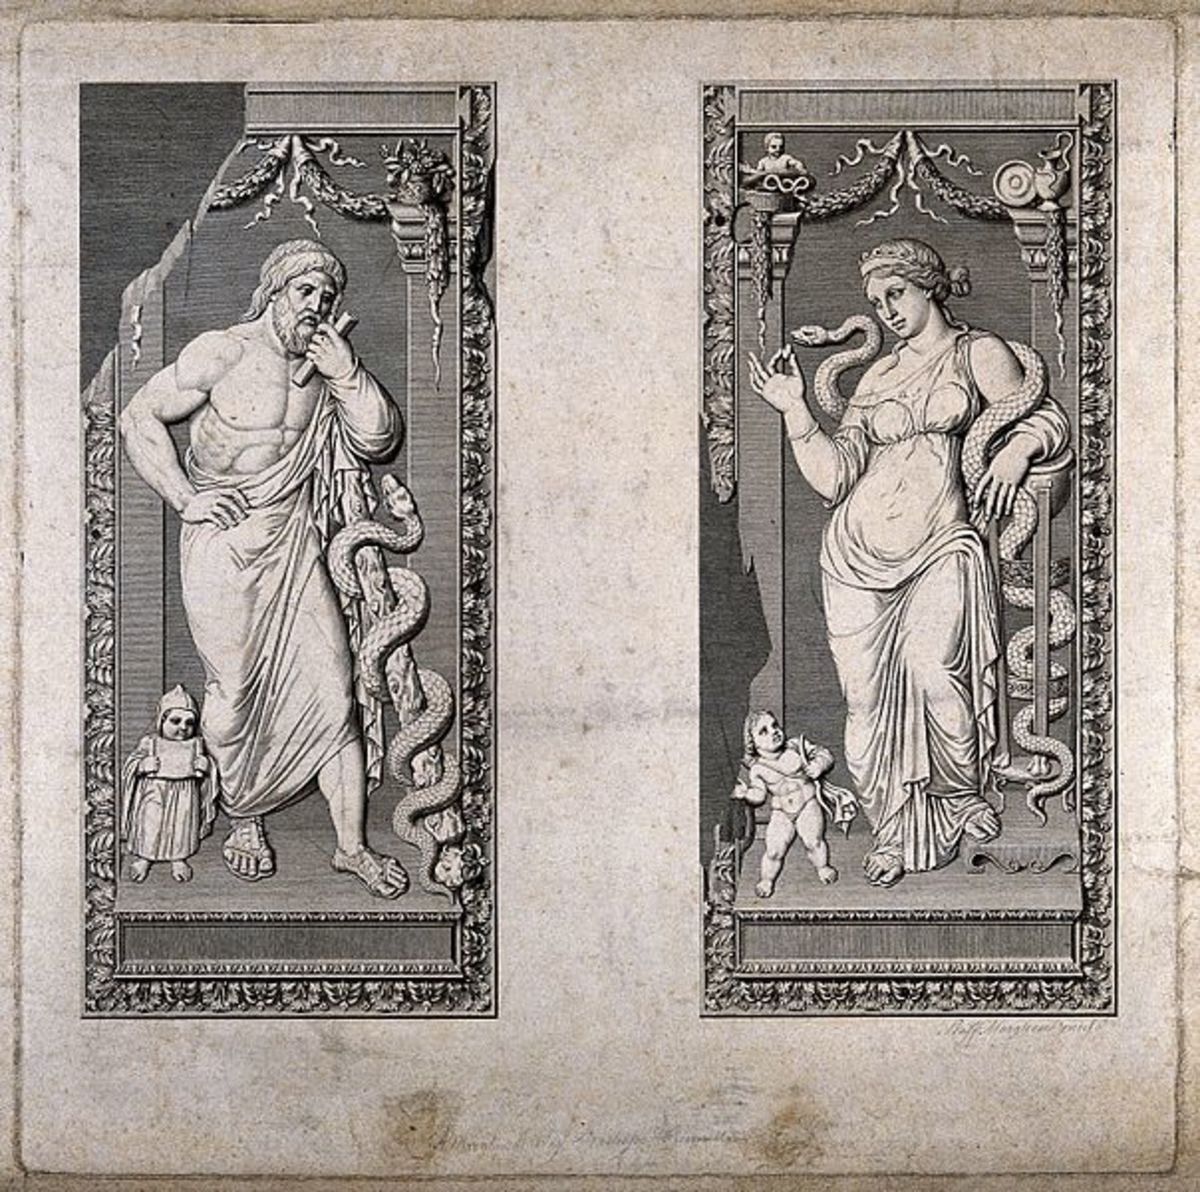 Aesculapius and Hygieia. Engraving by R. Morghen - Wellcome Images CC-BY-4.0